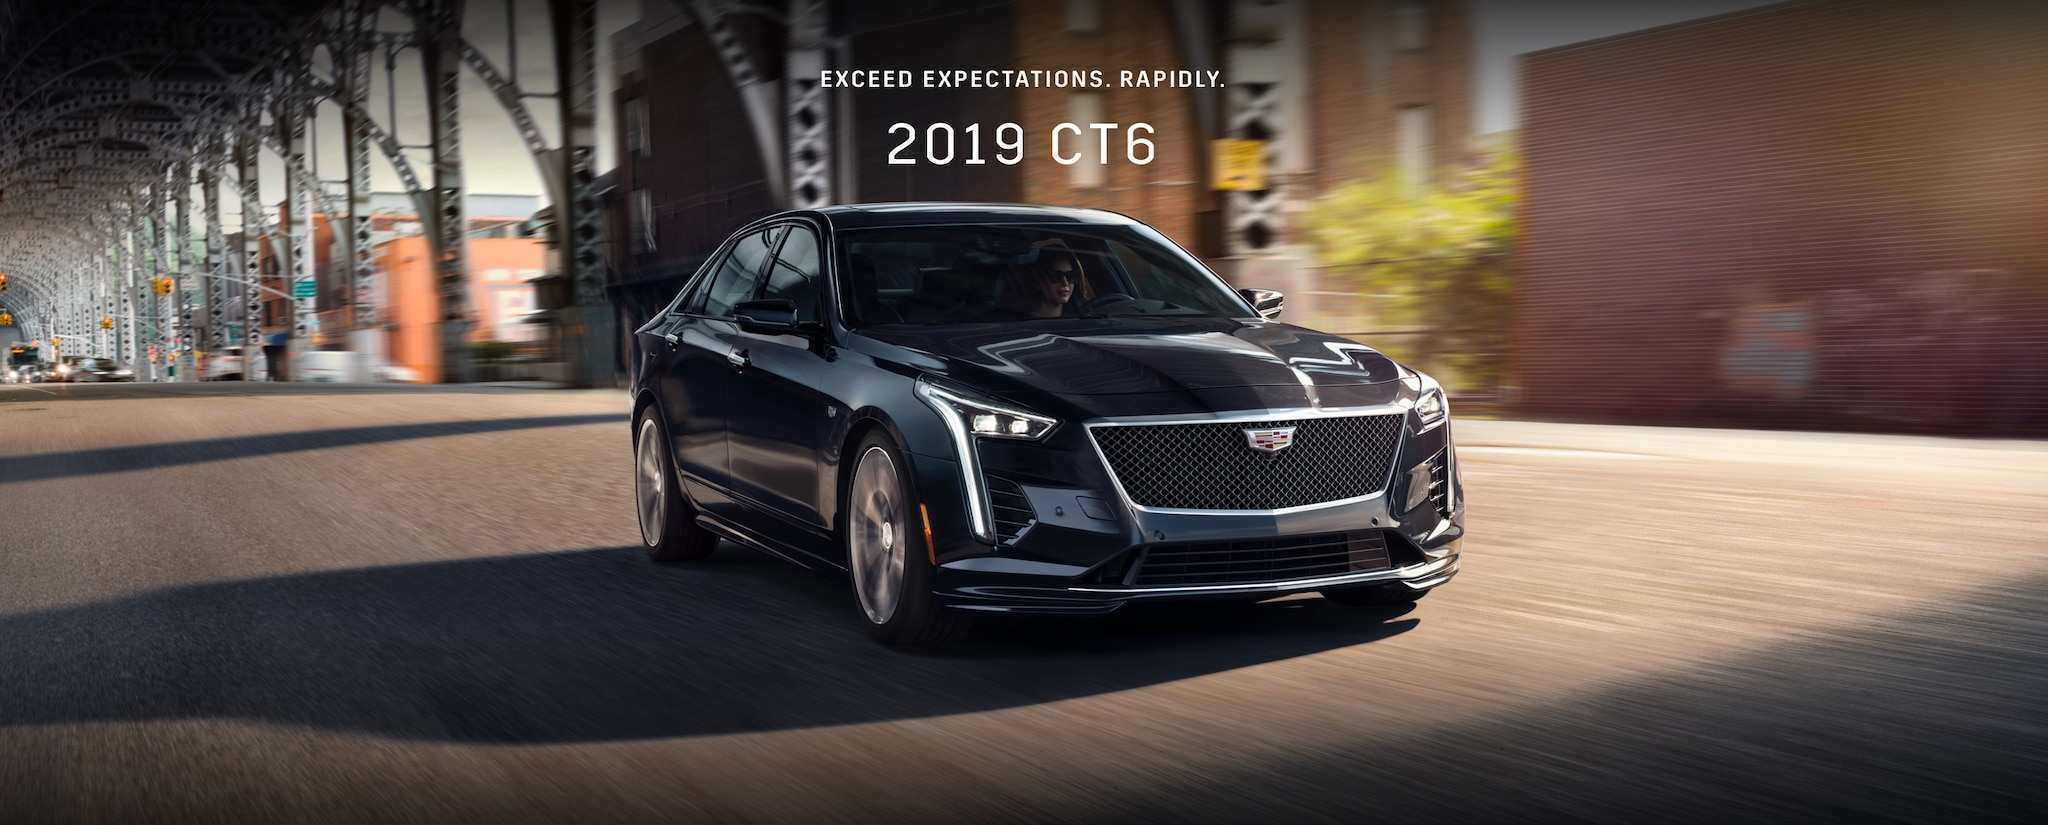 30 A 2019 Cadillac Releases Price And Release Date